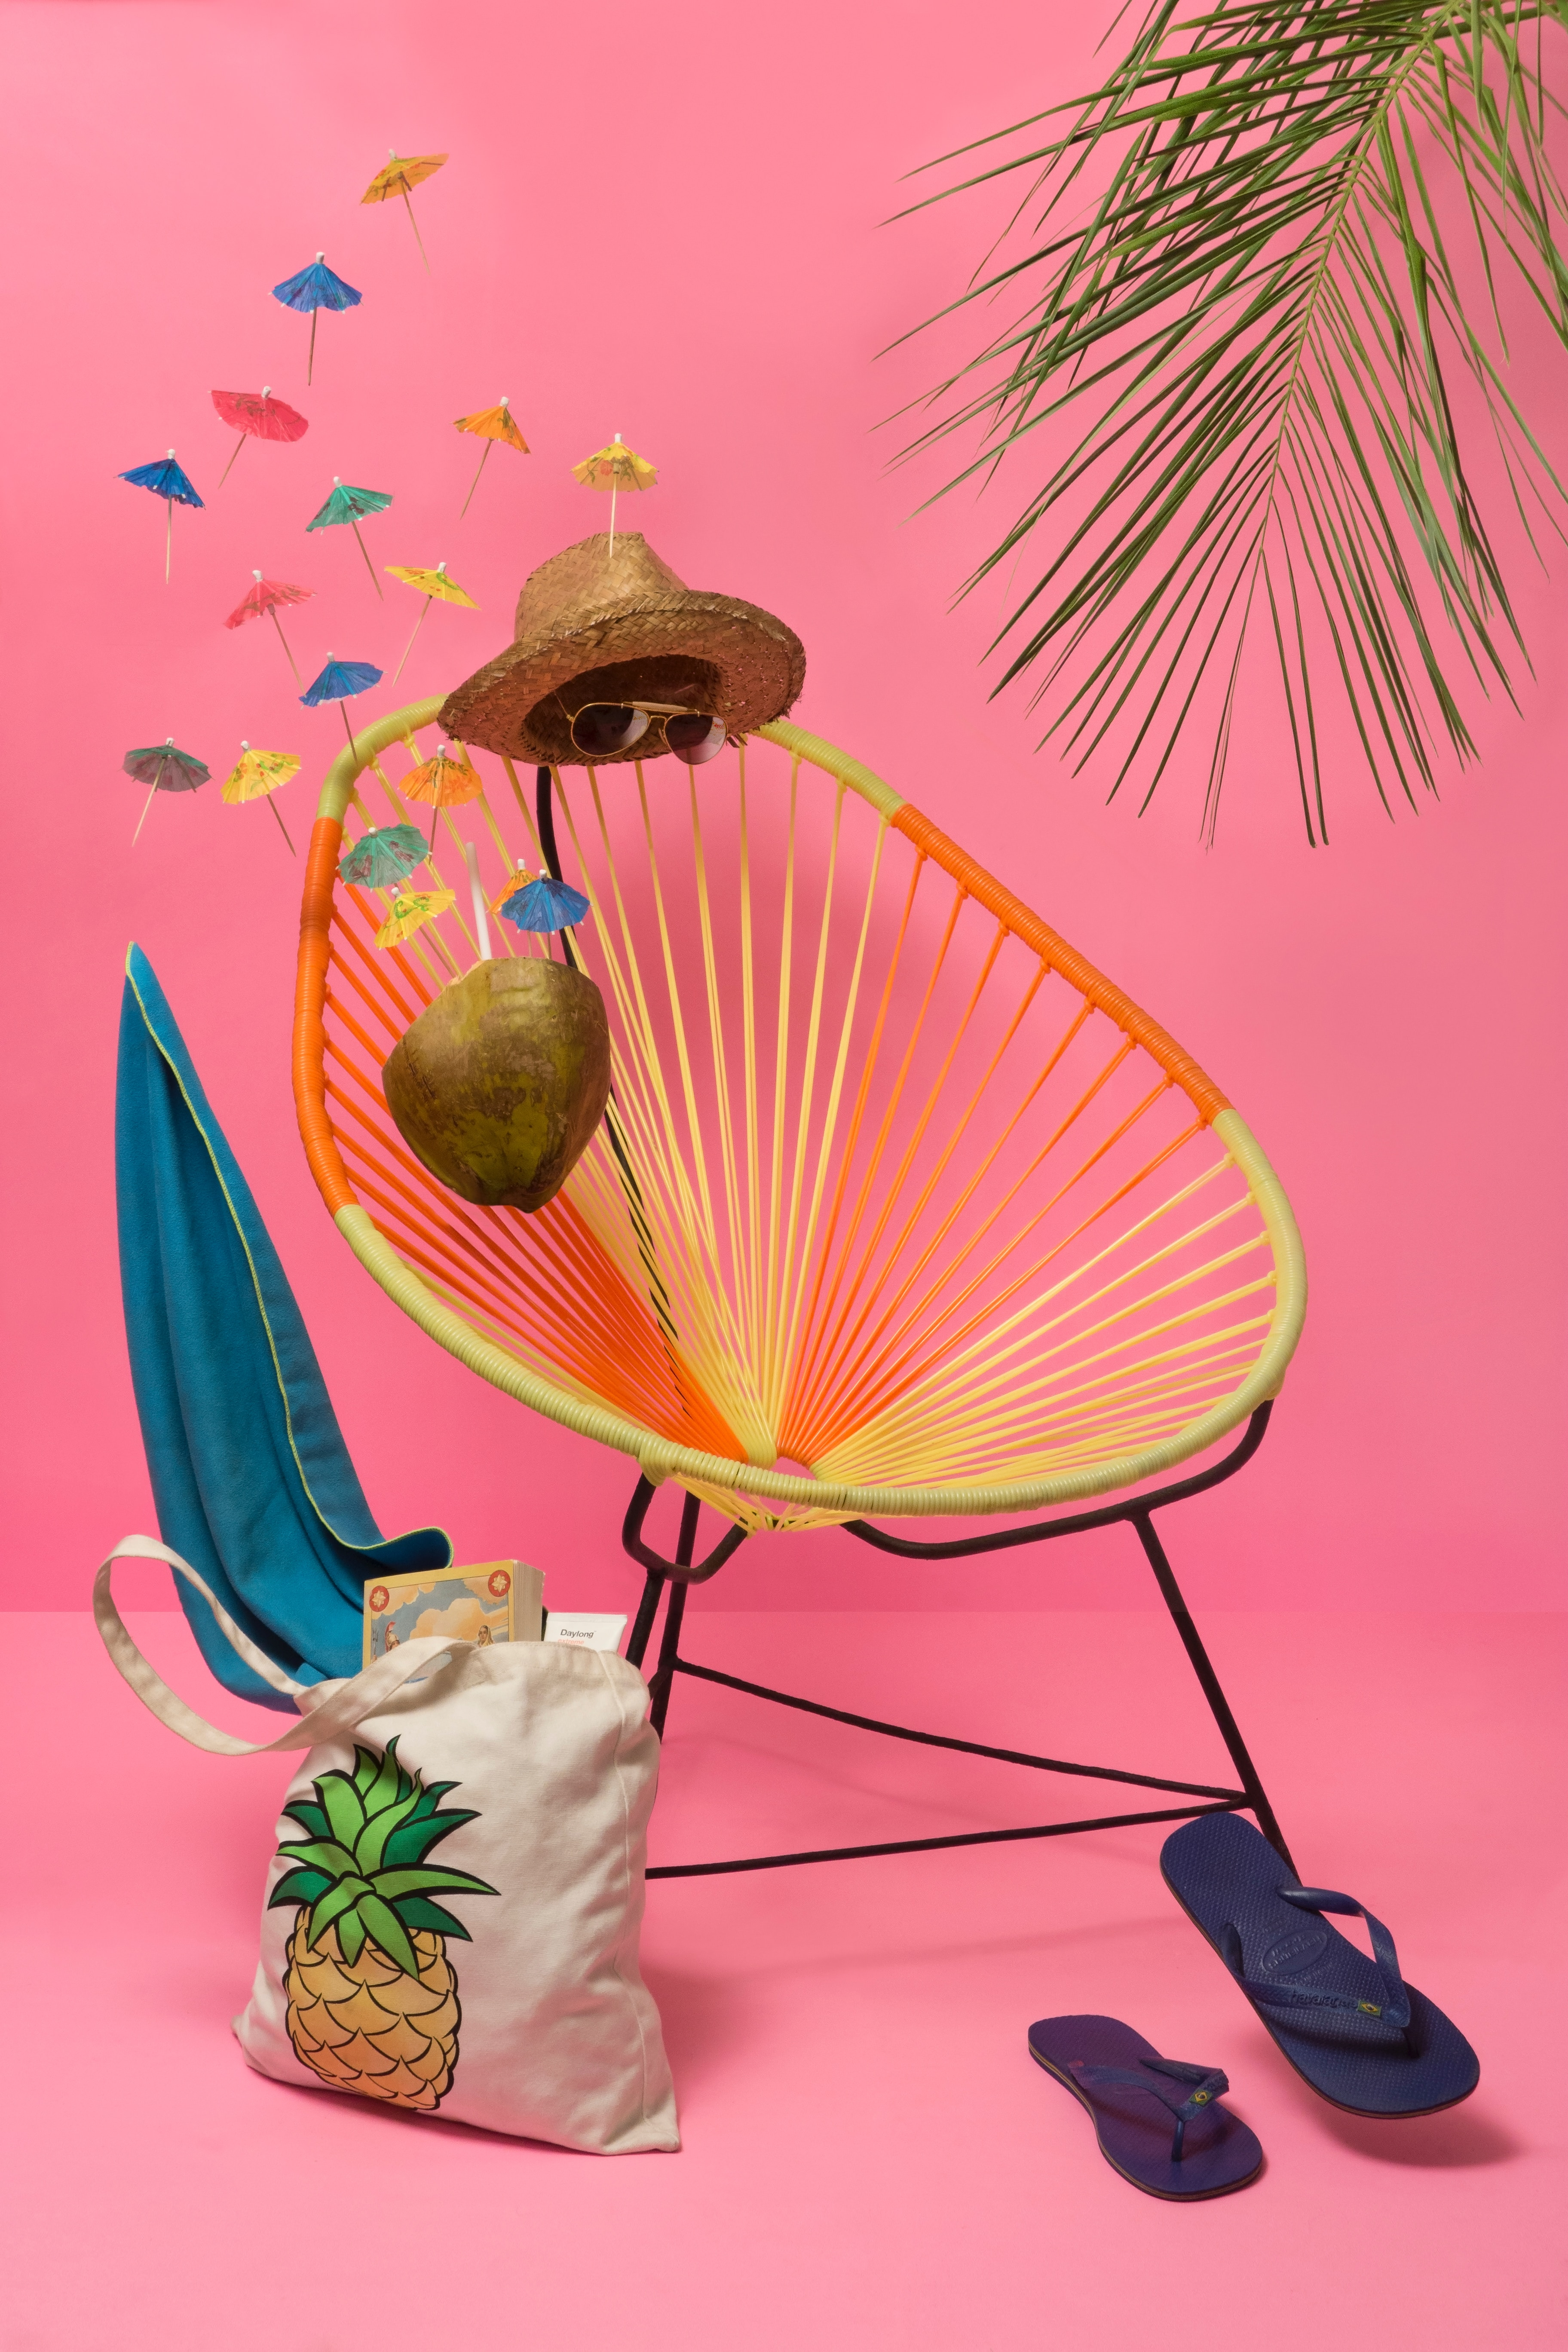 Photo of a circular lounge chair with floating sunglasses, a hate, a coconut drink, and flip flops like an invisible person is sitting in the chair